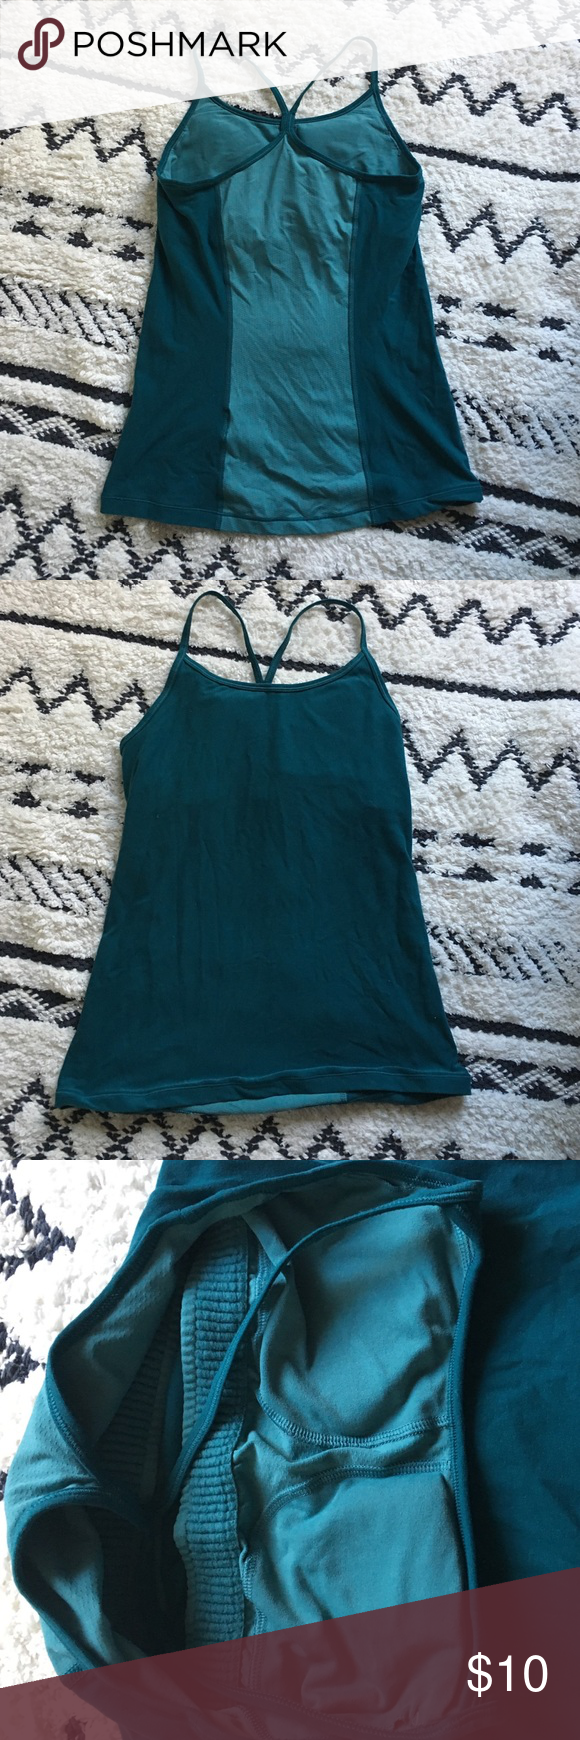 Nike 2-Tone Workout Tank Super cute workout top. Has a different color stripe down the back. Has a built in bra as well! Worn once. Nike Tops